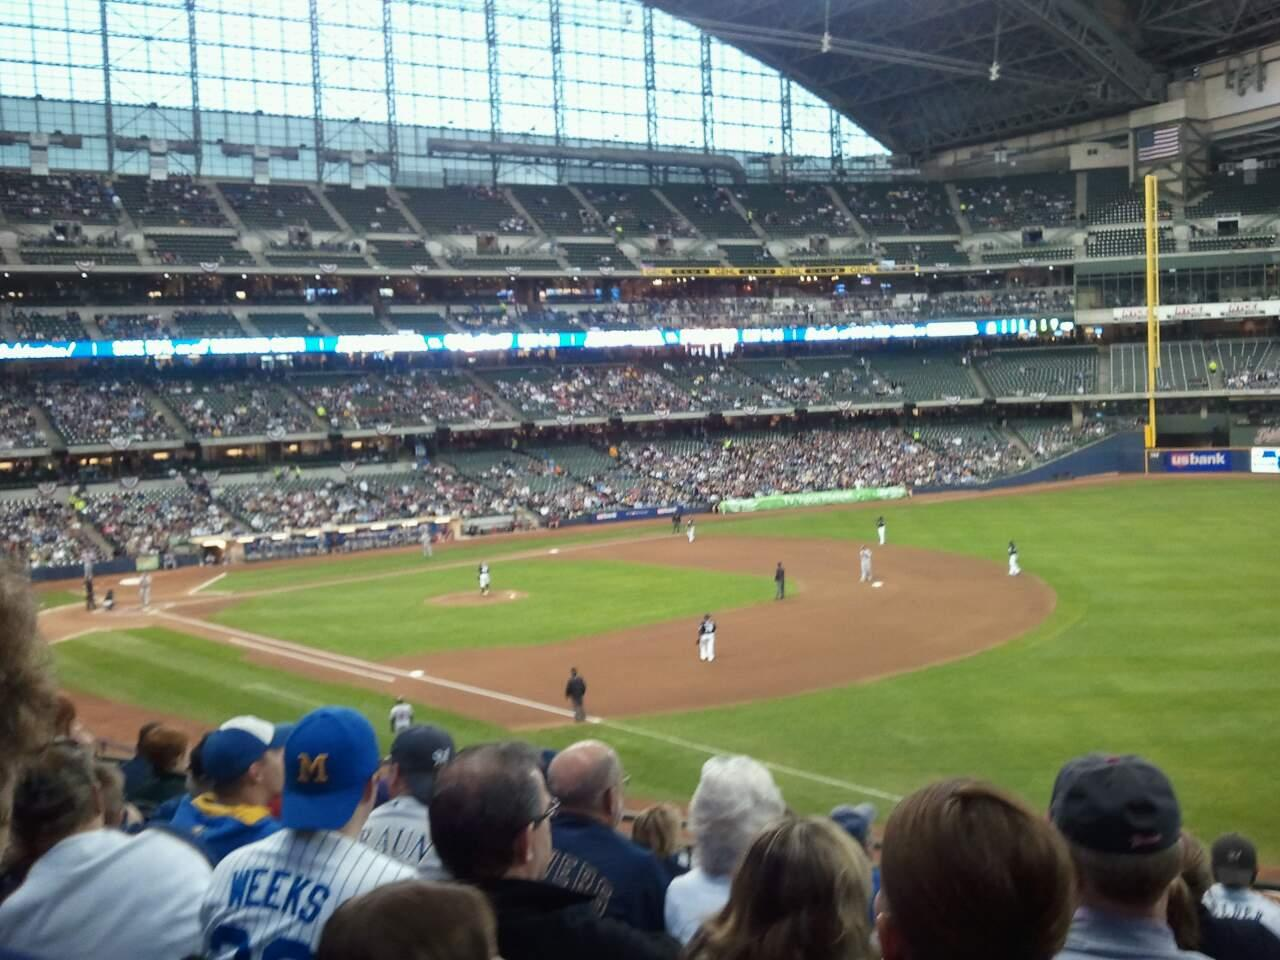 Miller Park Section 209 Row 8 Seat 17